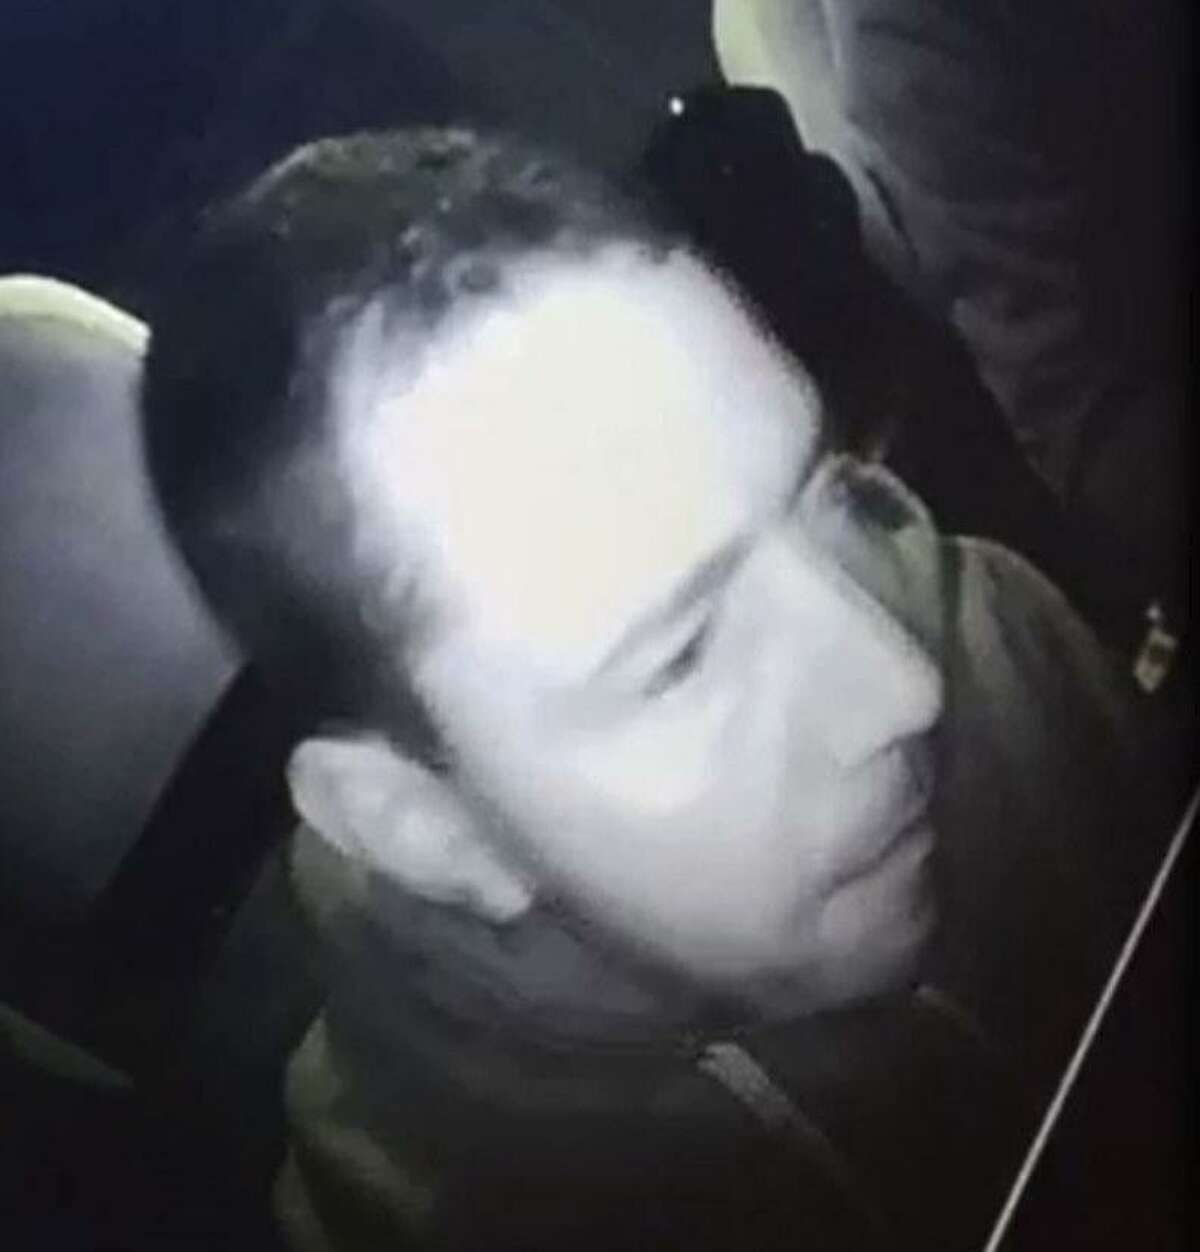 Police are searching for two men who punched and robbed a Daly City taxi driver early Saturday.